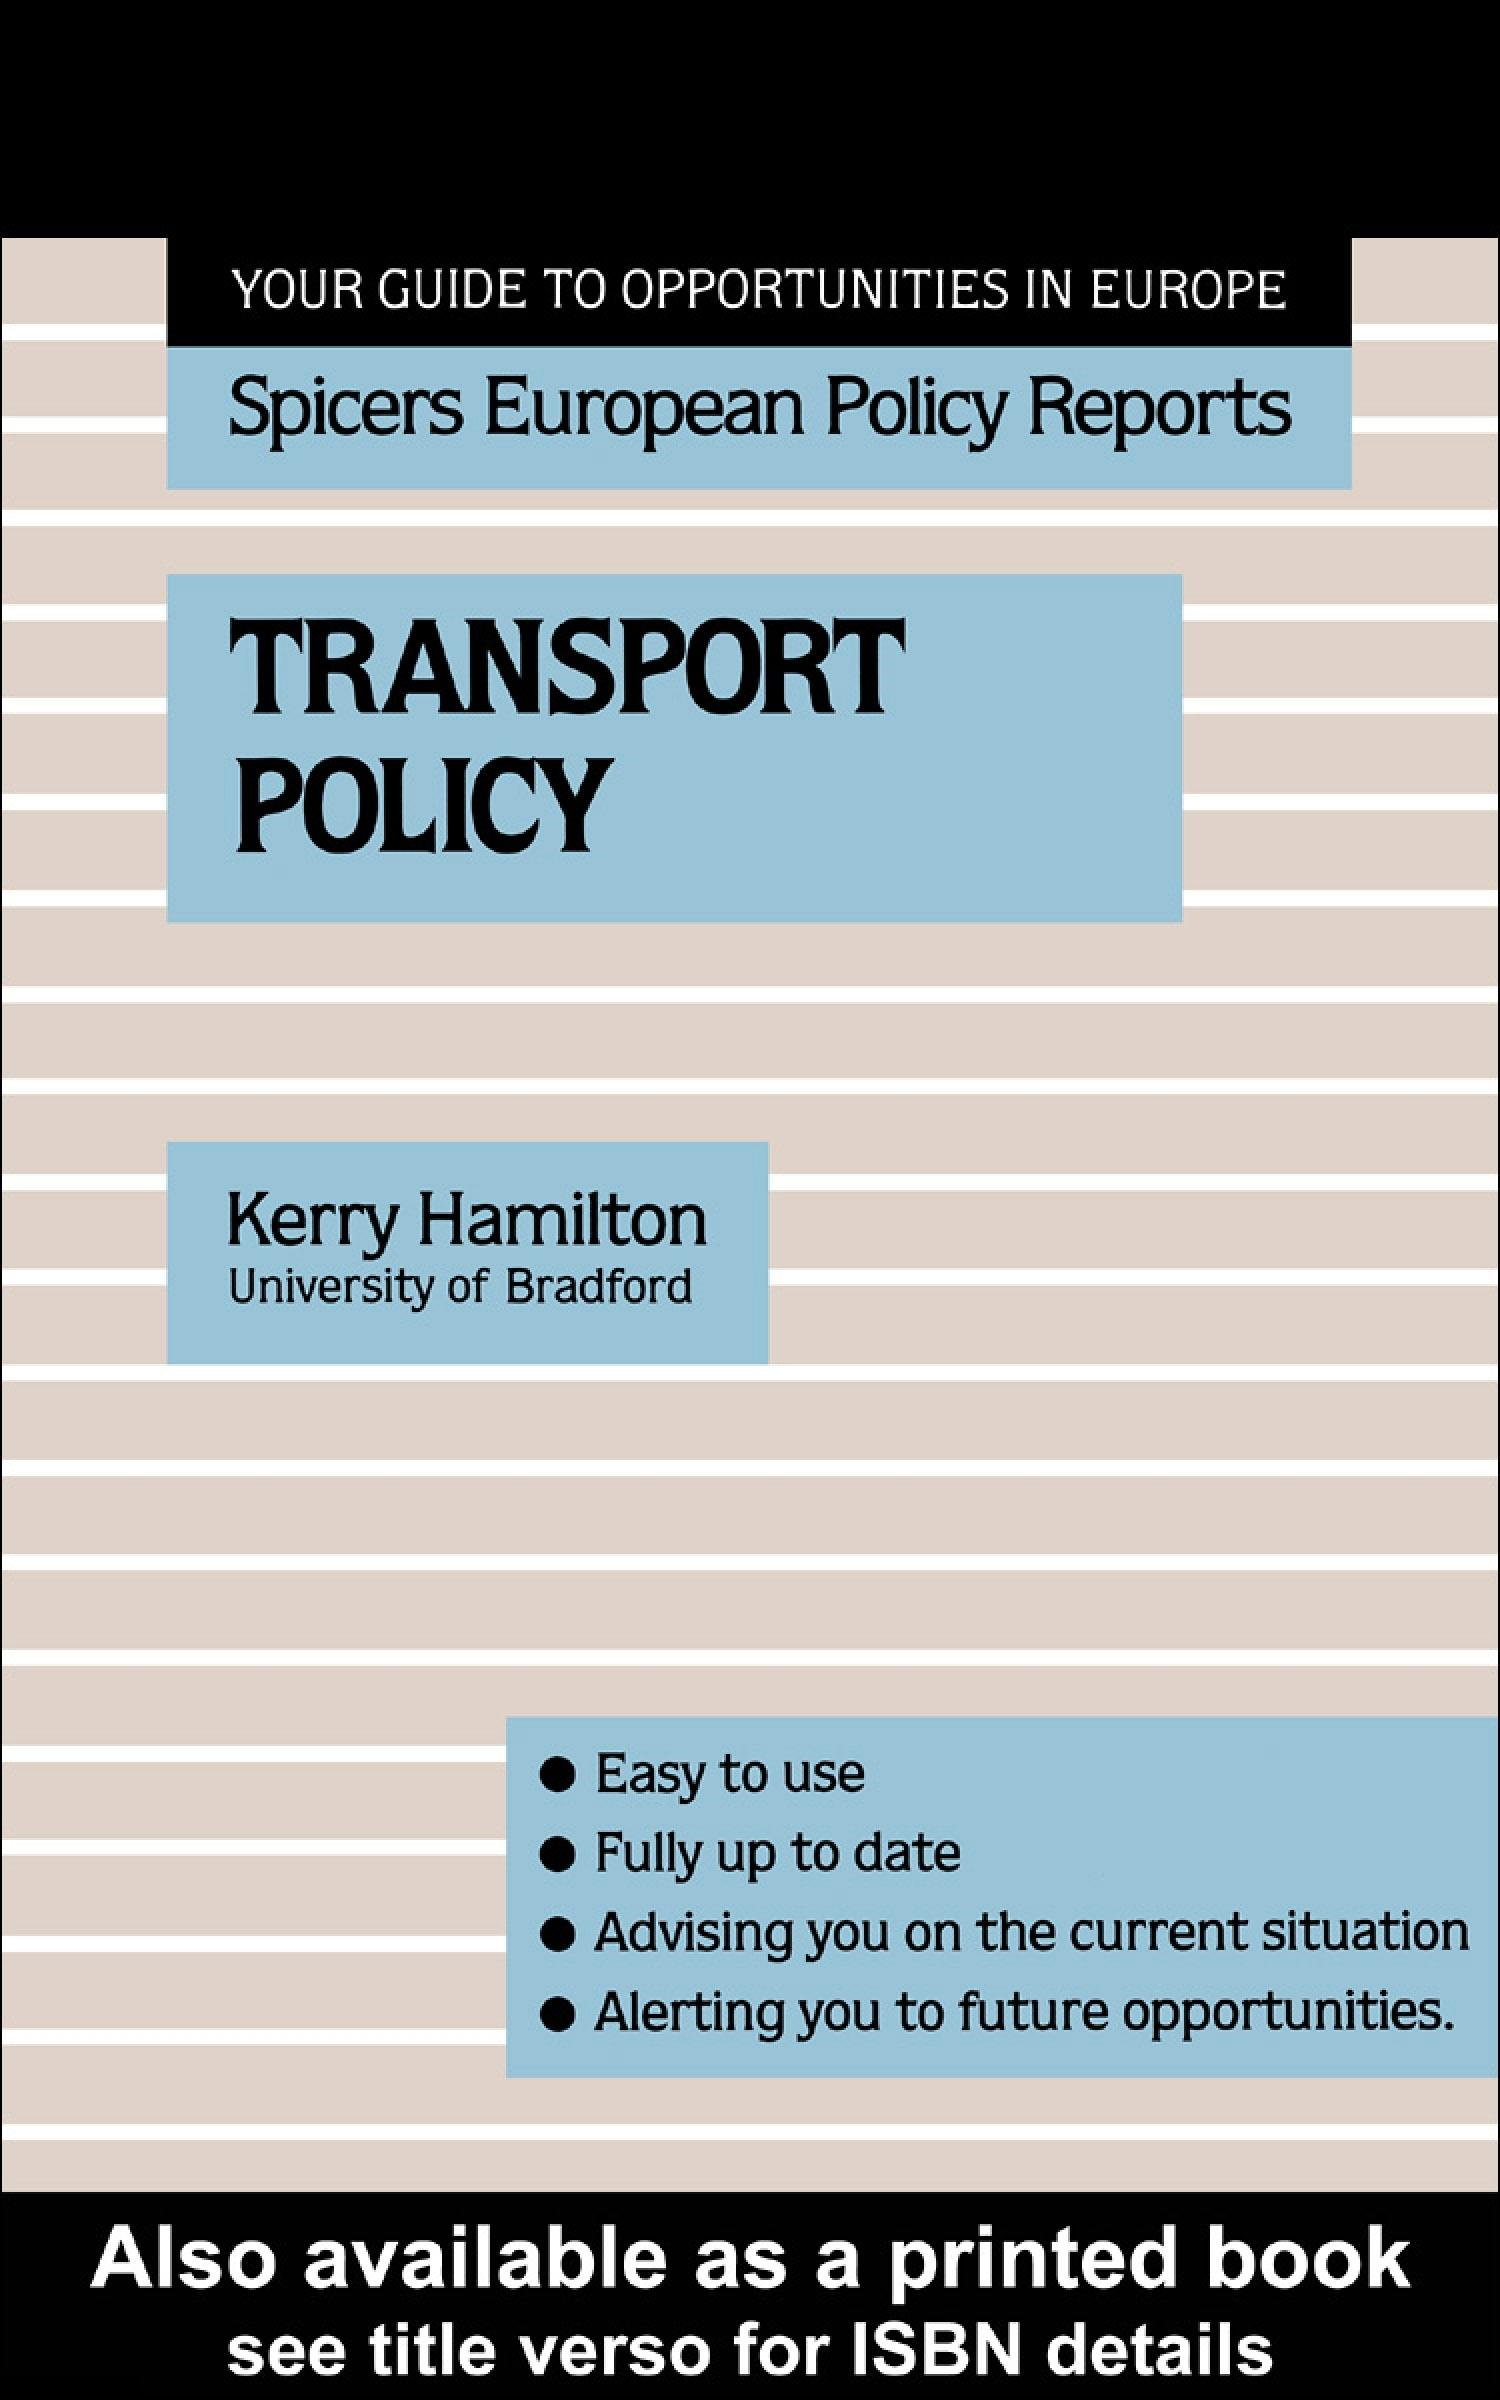 Transport Policy By: Hans J. Welzer